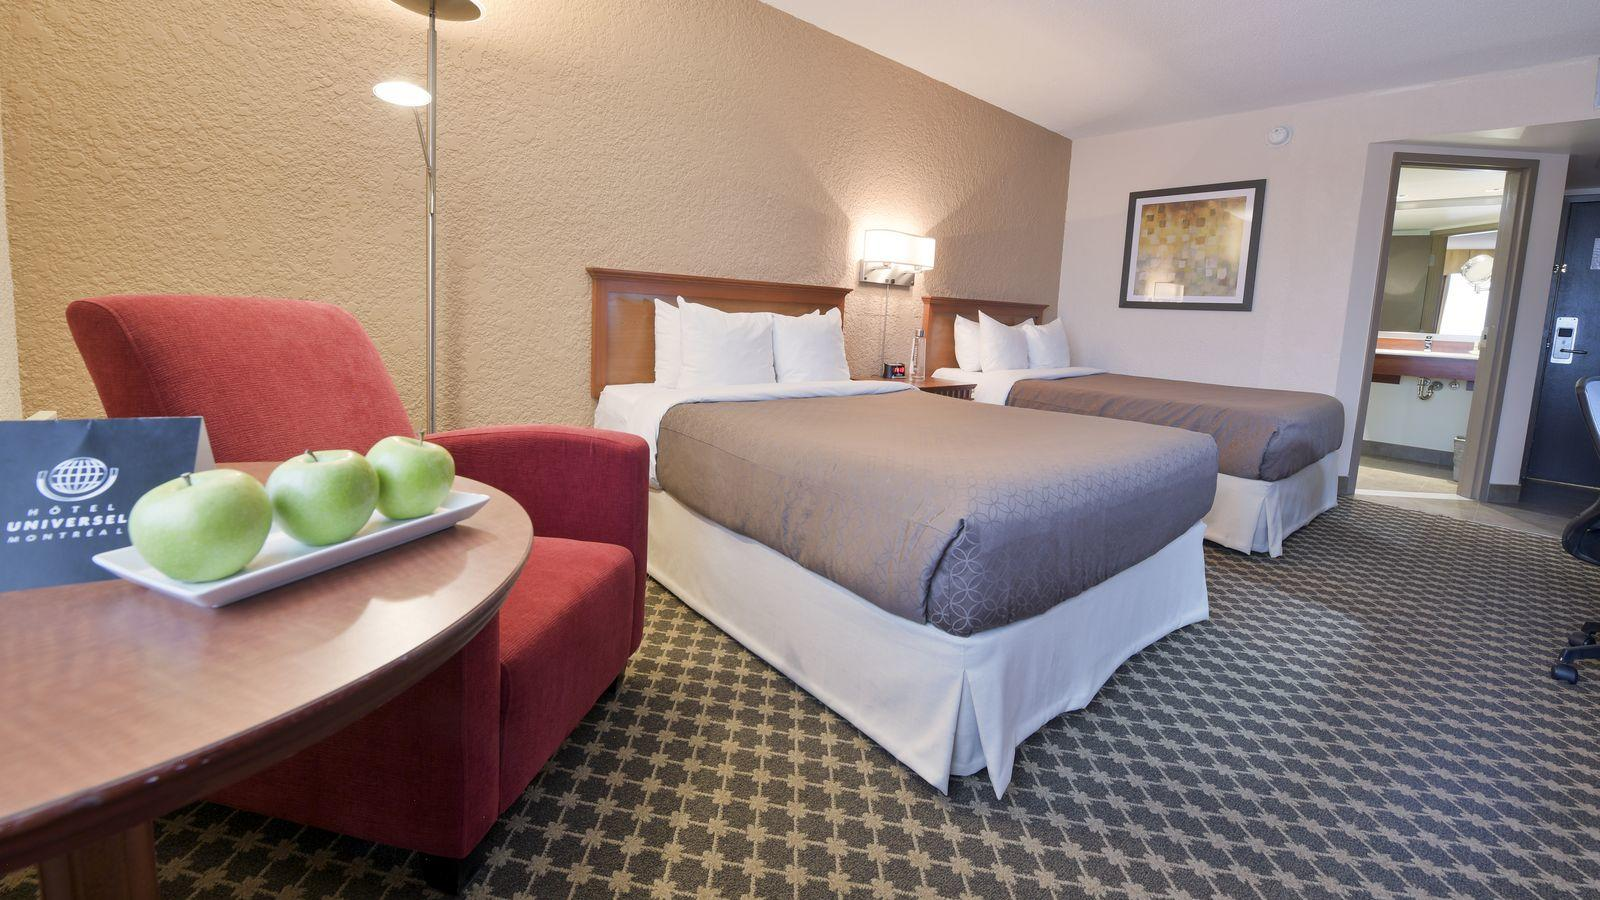 Guest room with two beds, reading chair and table with plate of apples.